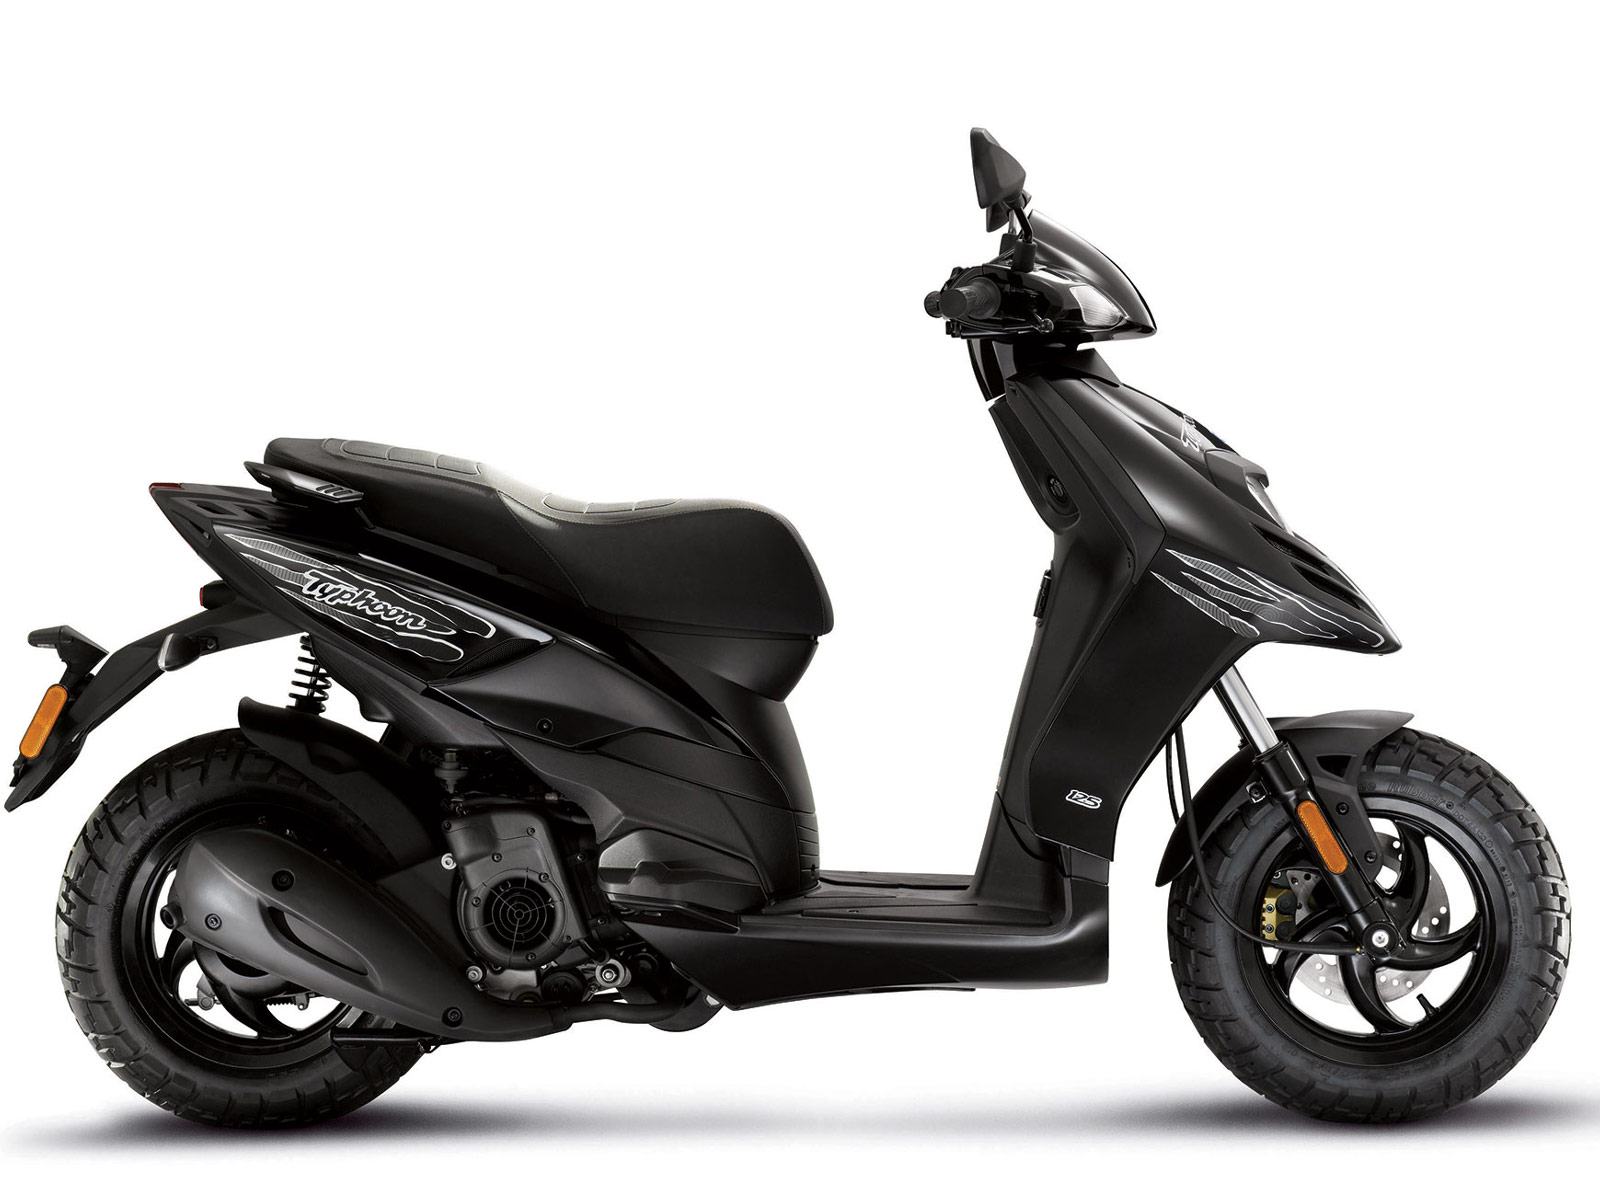 2013 insurance information piaggio typhoon 125 scooter pictures. Black Bedroom Furniture Sets. Home Design Ideas